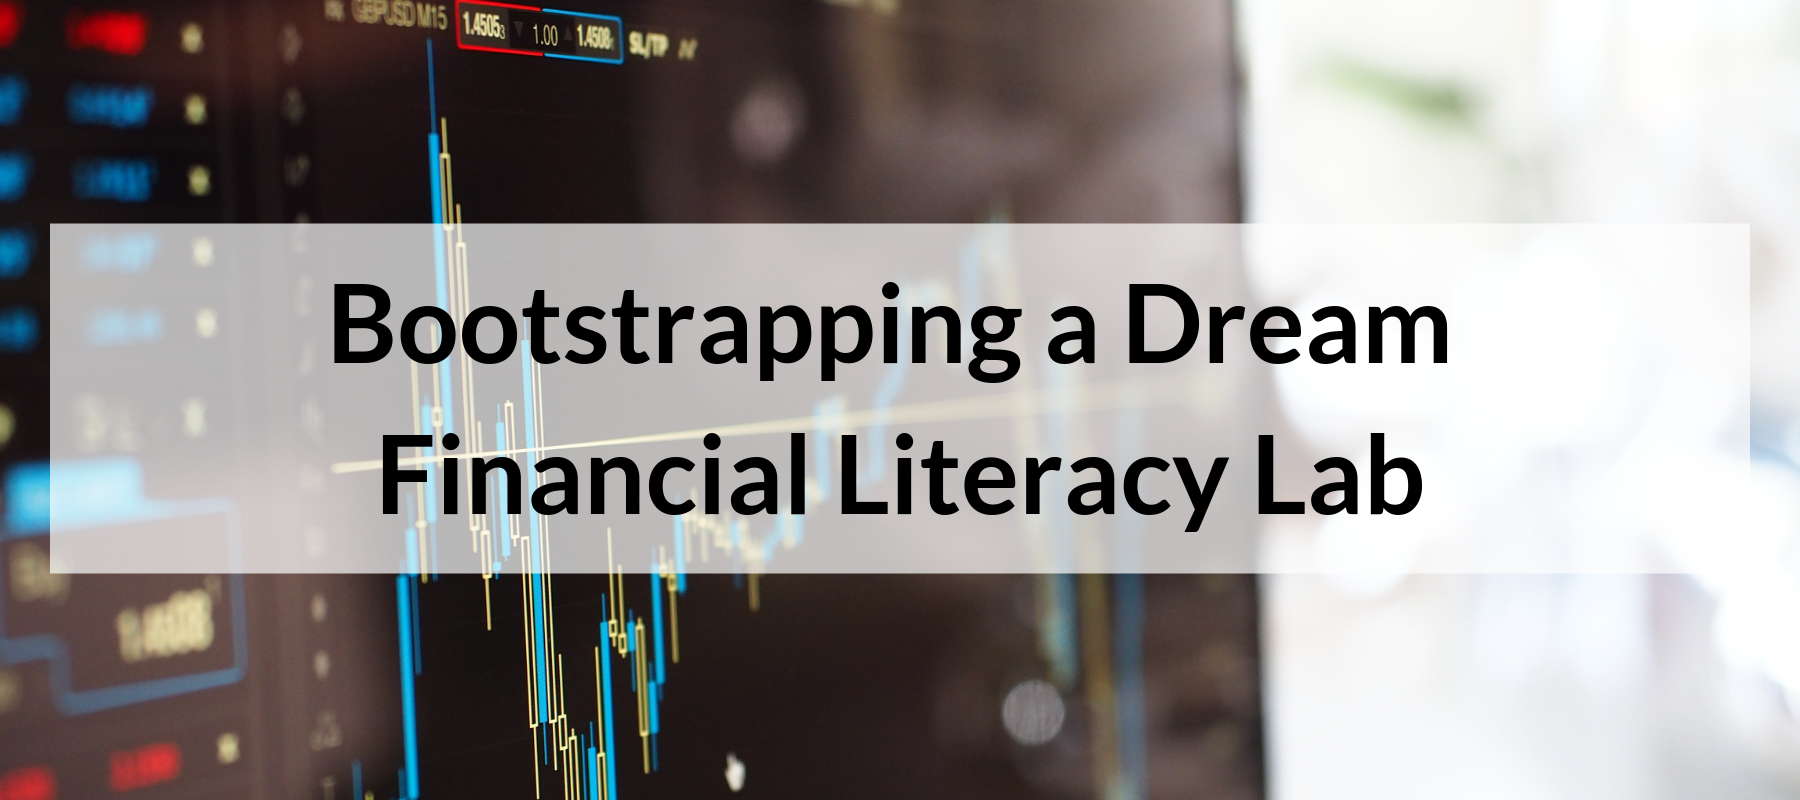 Bootstrapping a Dream Financial Literacy Lab